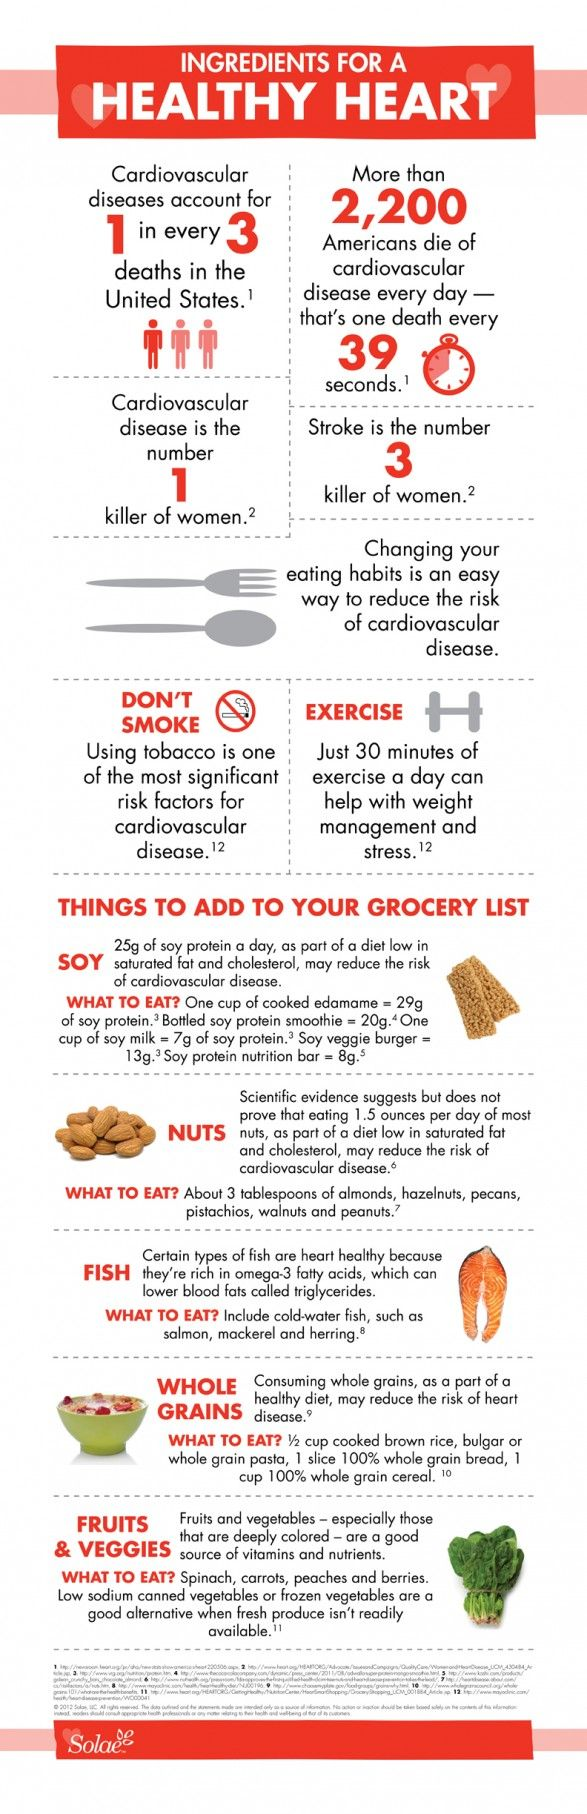 great info graphic on ingredients for a healthy heart